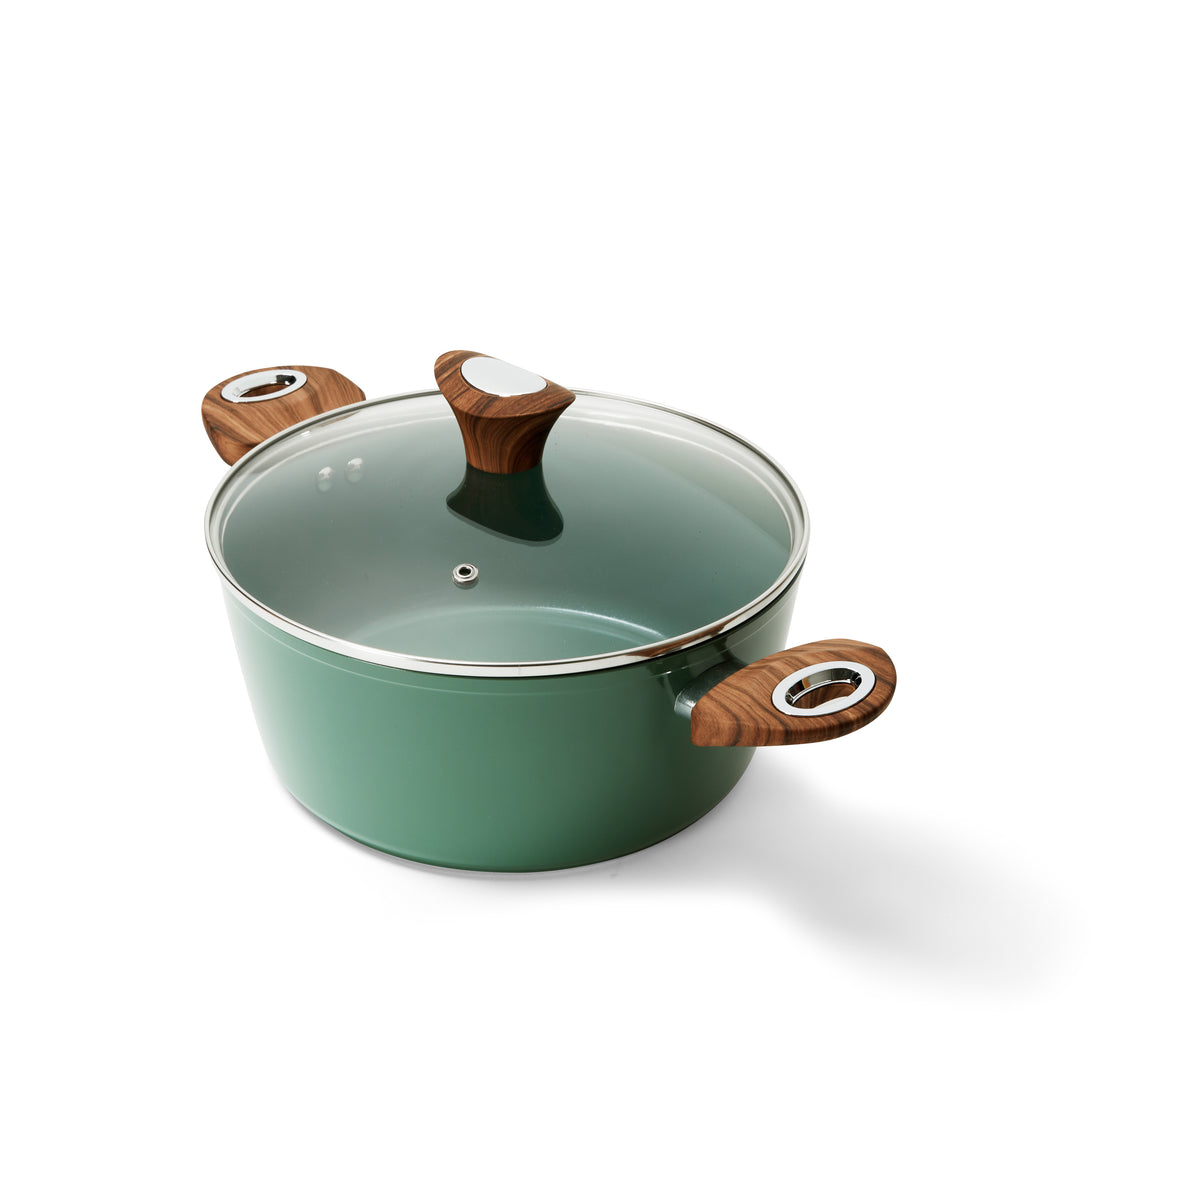 4.4 QT Casserole - Grove Collection